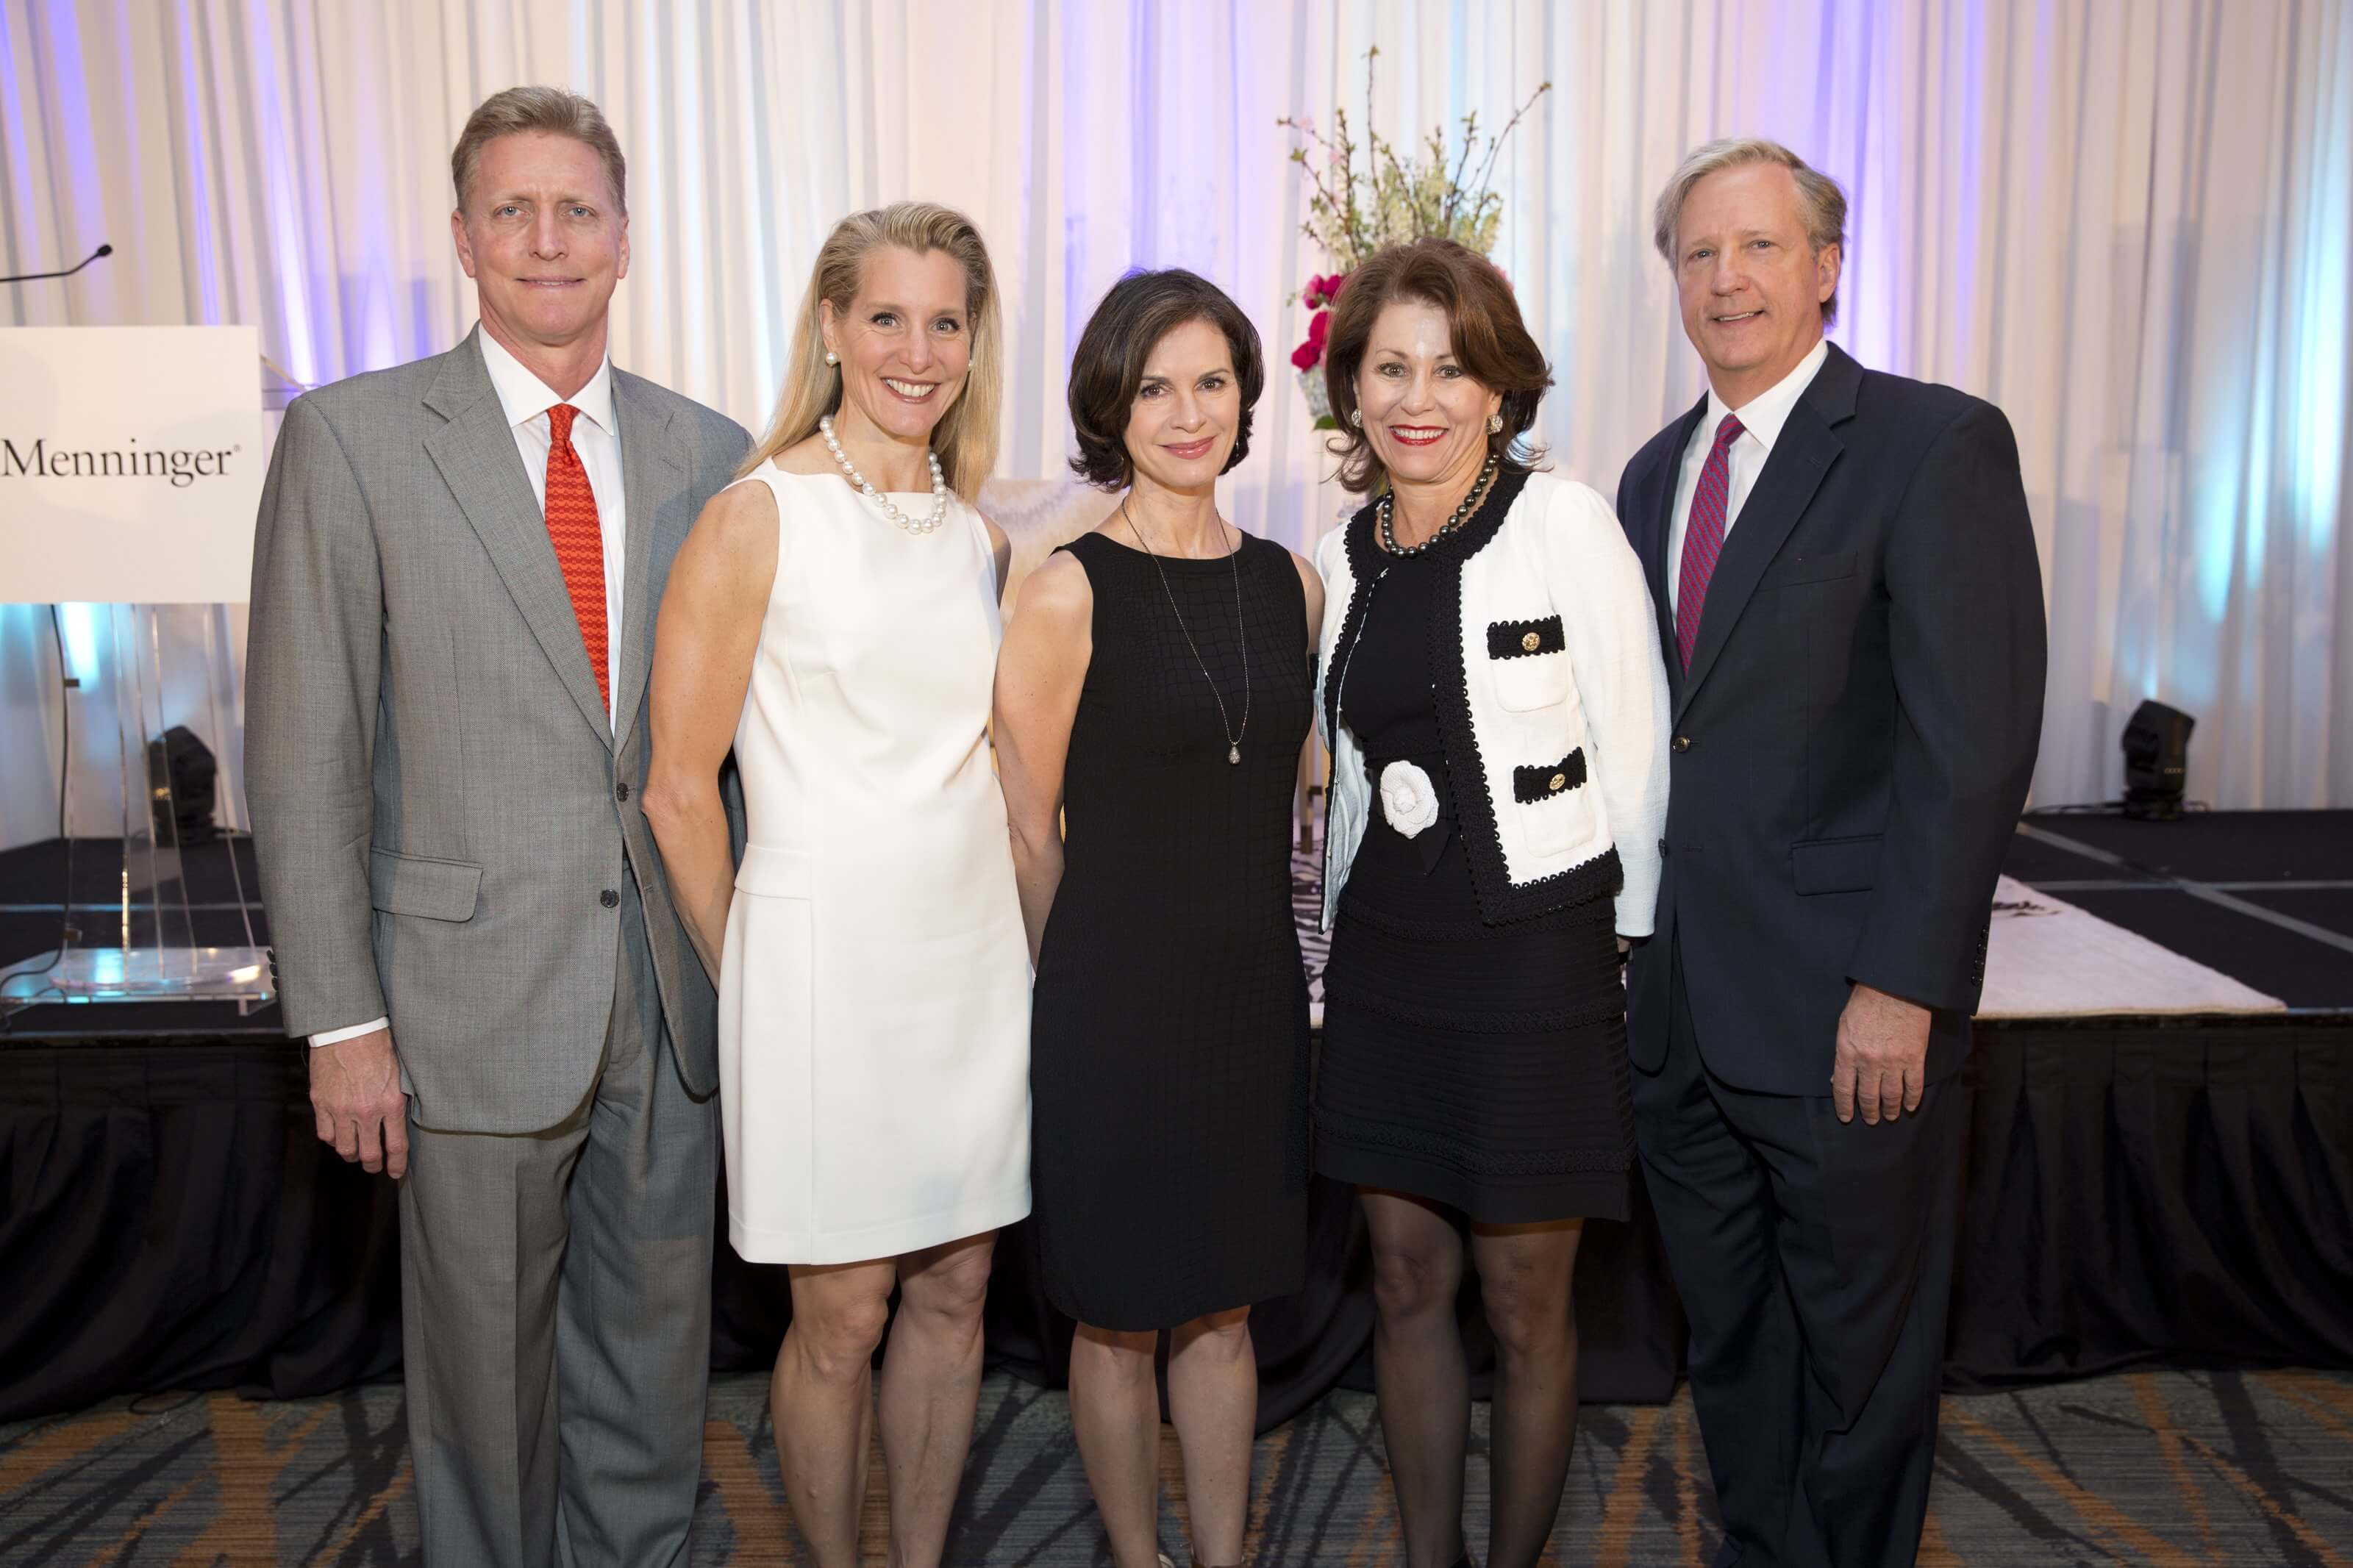 Luncheon co-chairs Jeff and Paula Paine, Elizabeth Vargas, and co-chairs Dorothy and Ronny Cuenod. (Photo Credit: Jenny Antill)